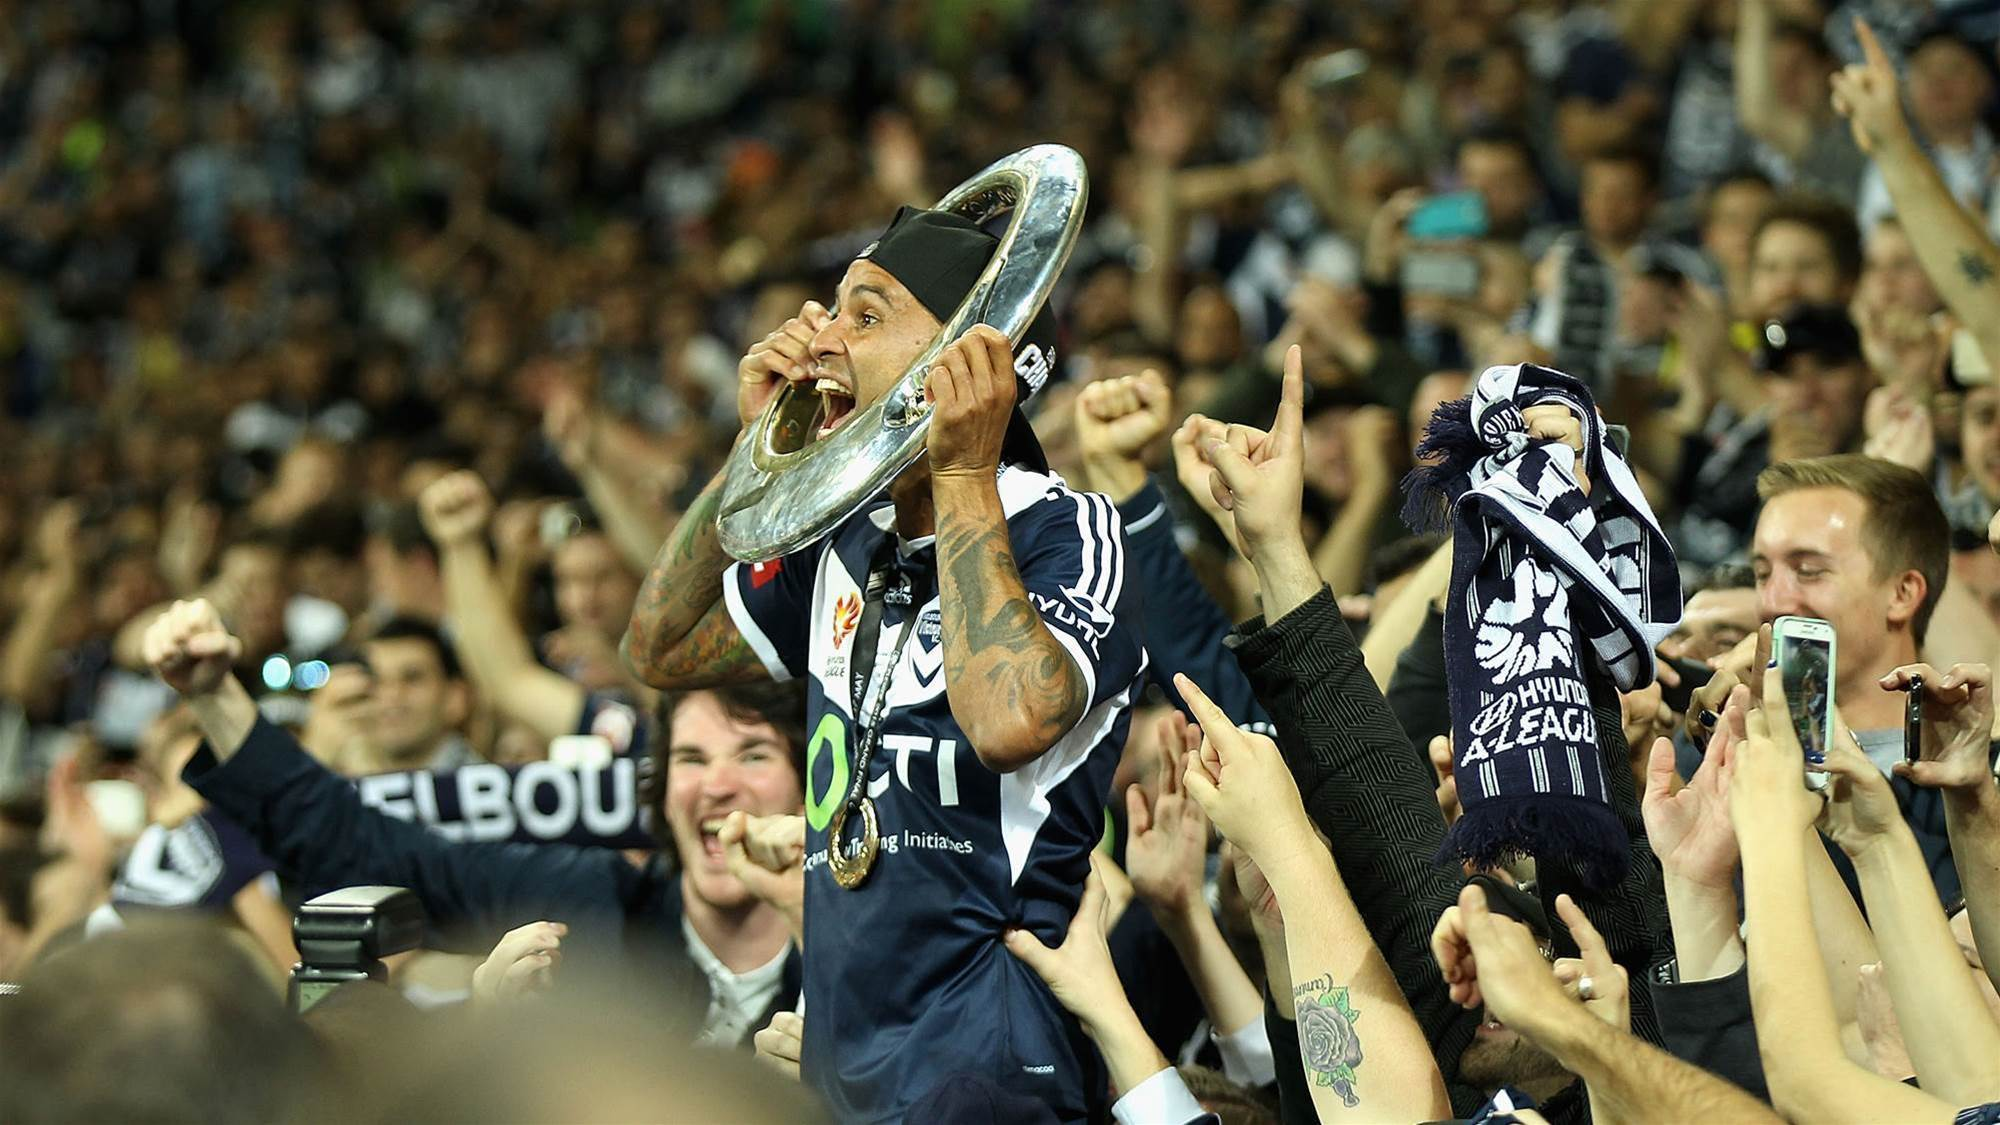 Q&A with Archie Thompson: I bleed blue